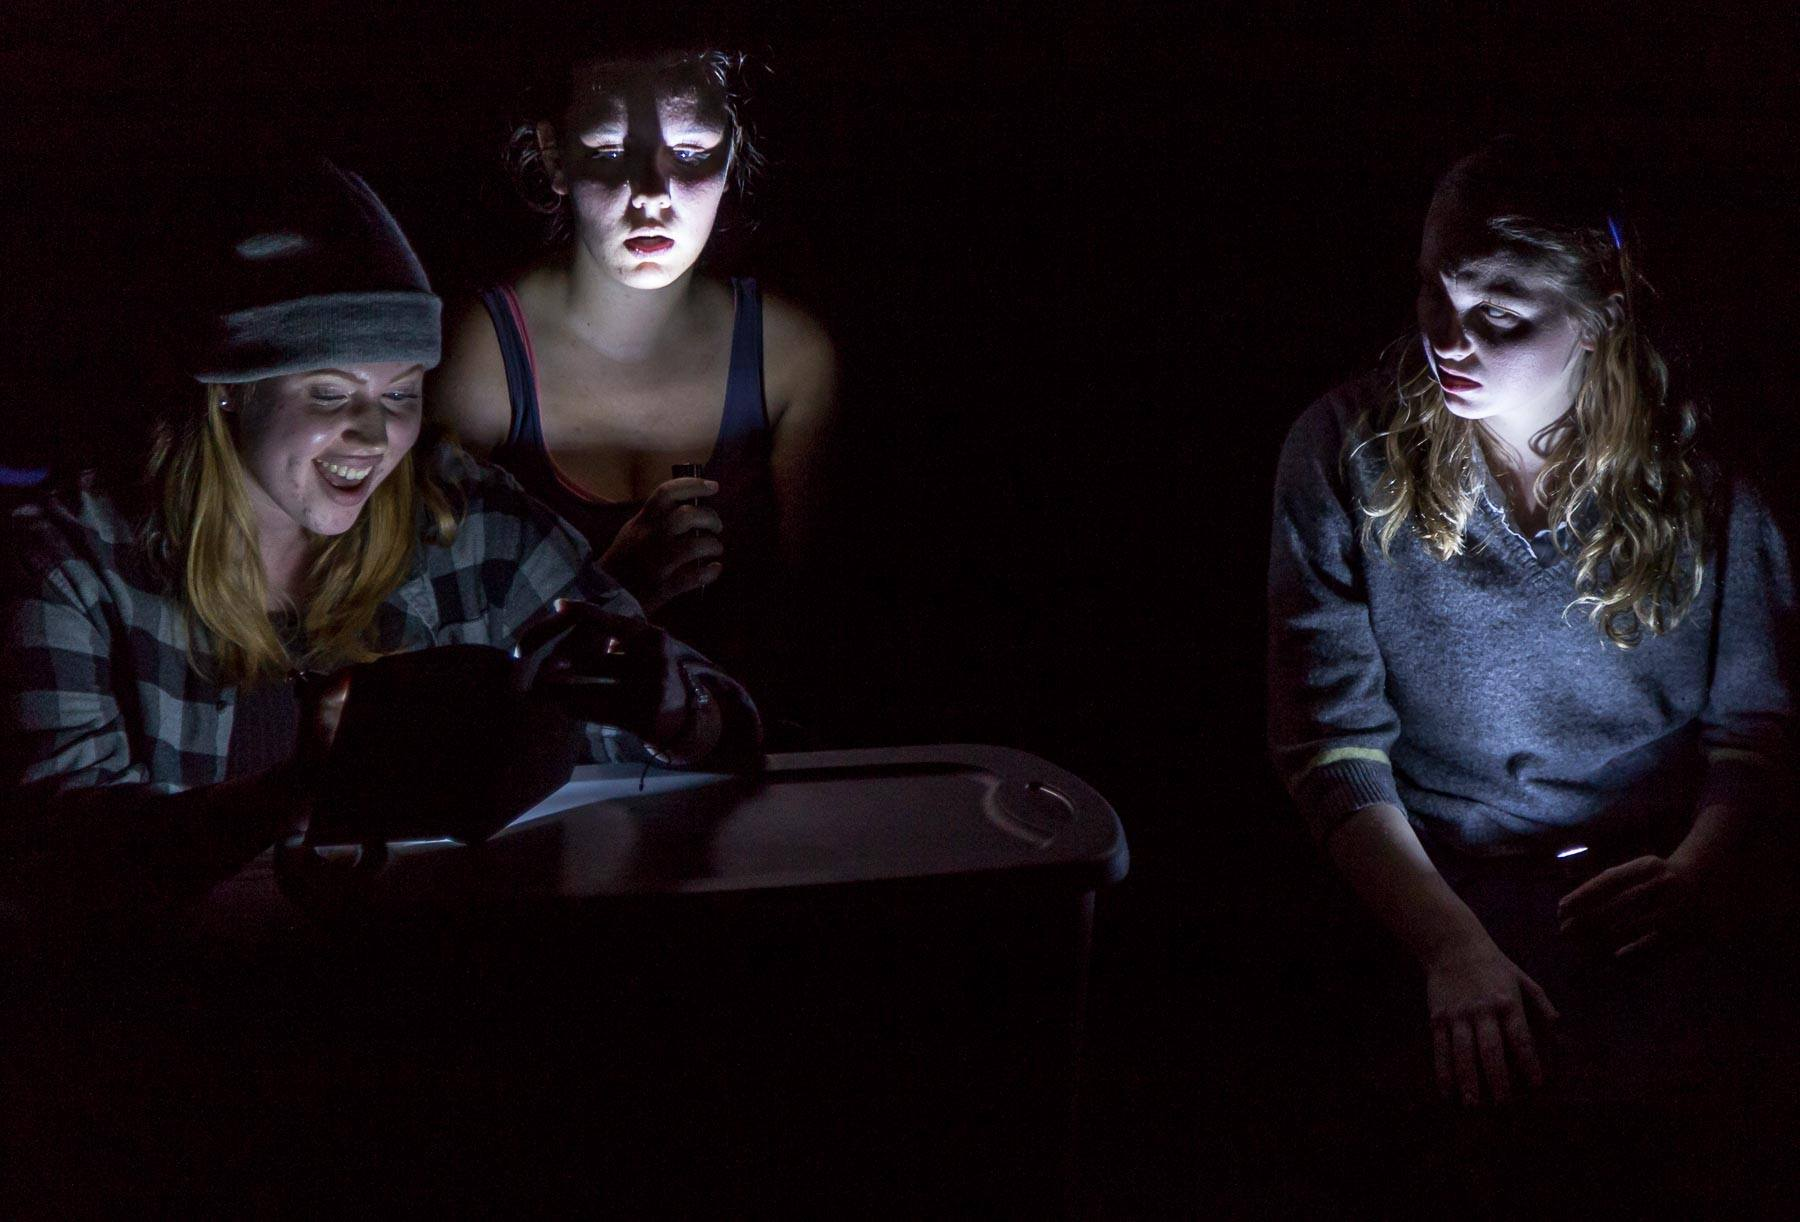 Bloody Mary - 3F / 1MThree girls play a seemingly innocent game that underscores much darker currents in their lives.p r o d u c t i o n s:The Island Theatre, Bainbridge Island, WA, 2017Night Terrors, Producers' Club Theaters, NYC 2014Best of Fresh Blood, Le Petite Morgue, NYC, 2012Fresh Blood, Le Petite Morgue, NYC, 2012The Love Creek Theater, NYC, 2010The American Globe Theater, NYC, 2008